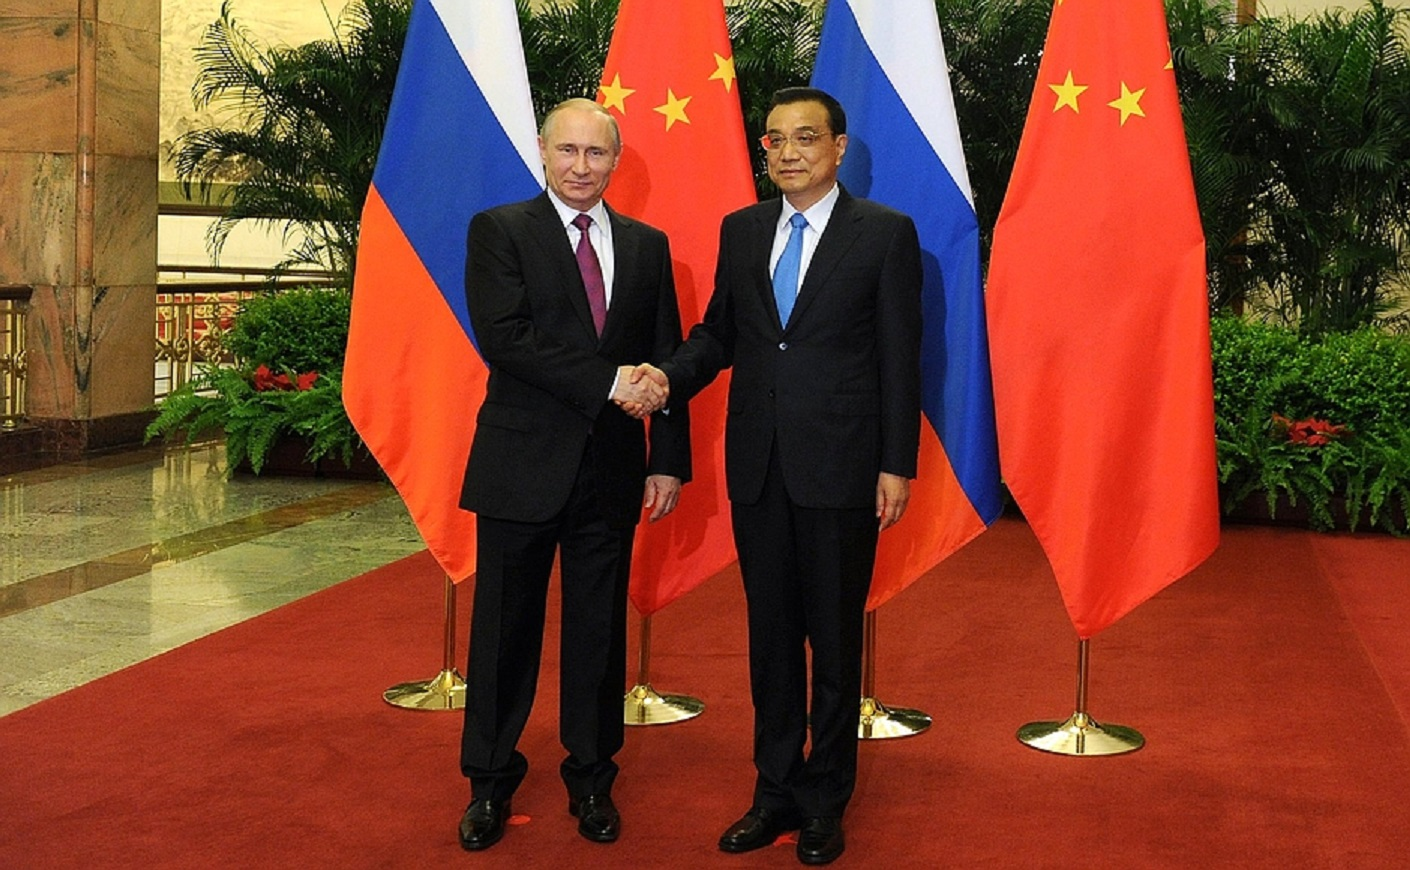 LA FEDERACIÓN de RUSIA · REP. POPULAR CHINA.